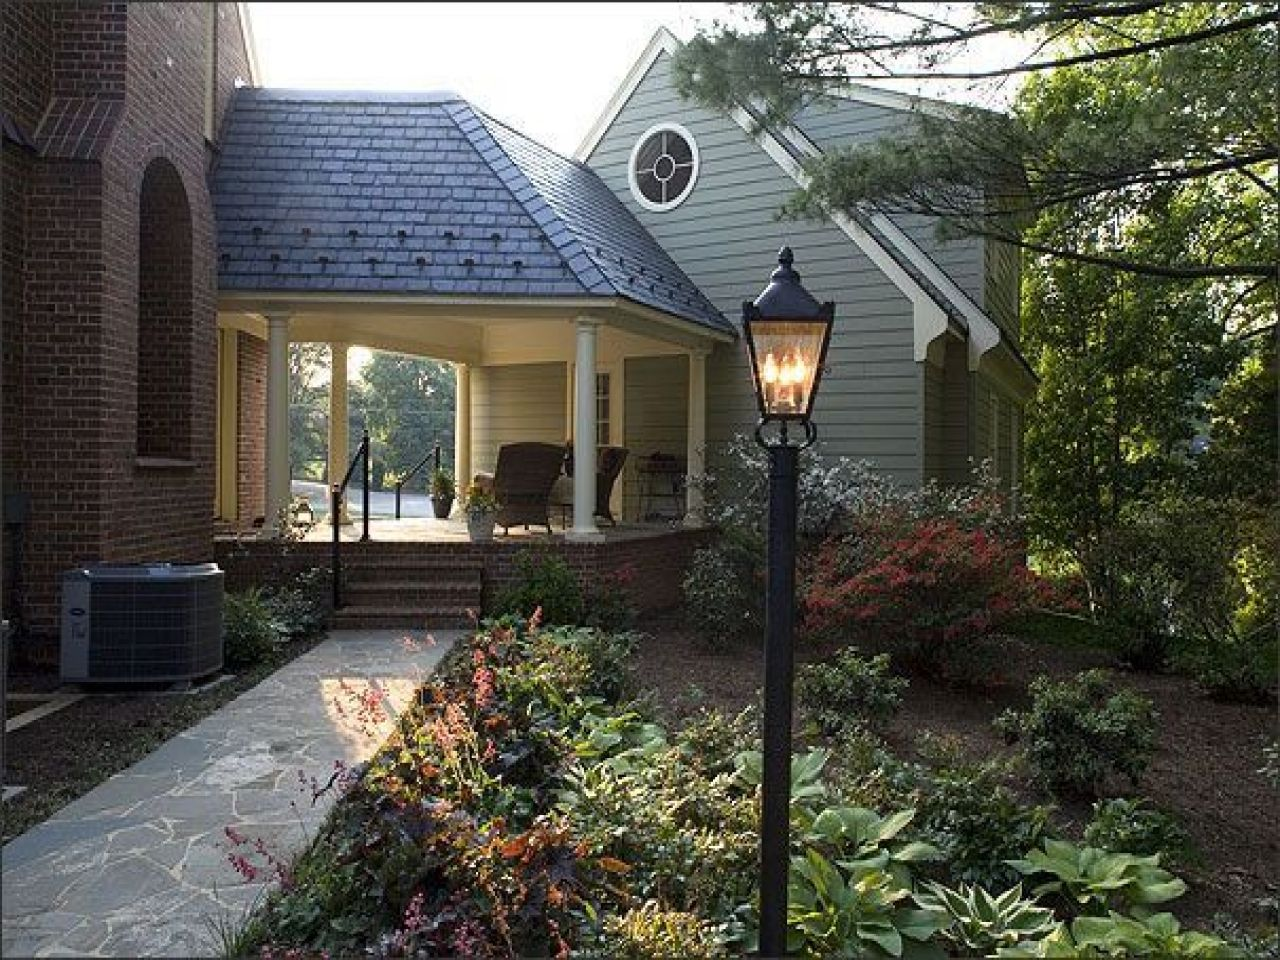 Detached Garage Connected To Wrap Around Porch With A Breezeway Description From Pinterest Com I Searched For This Garage House Plans Garage House Breezeway